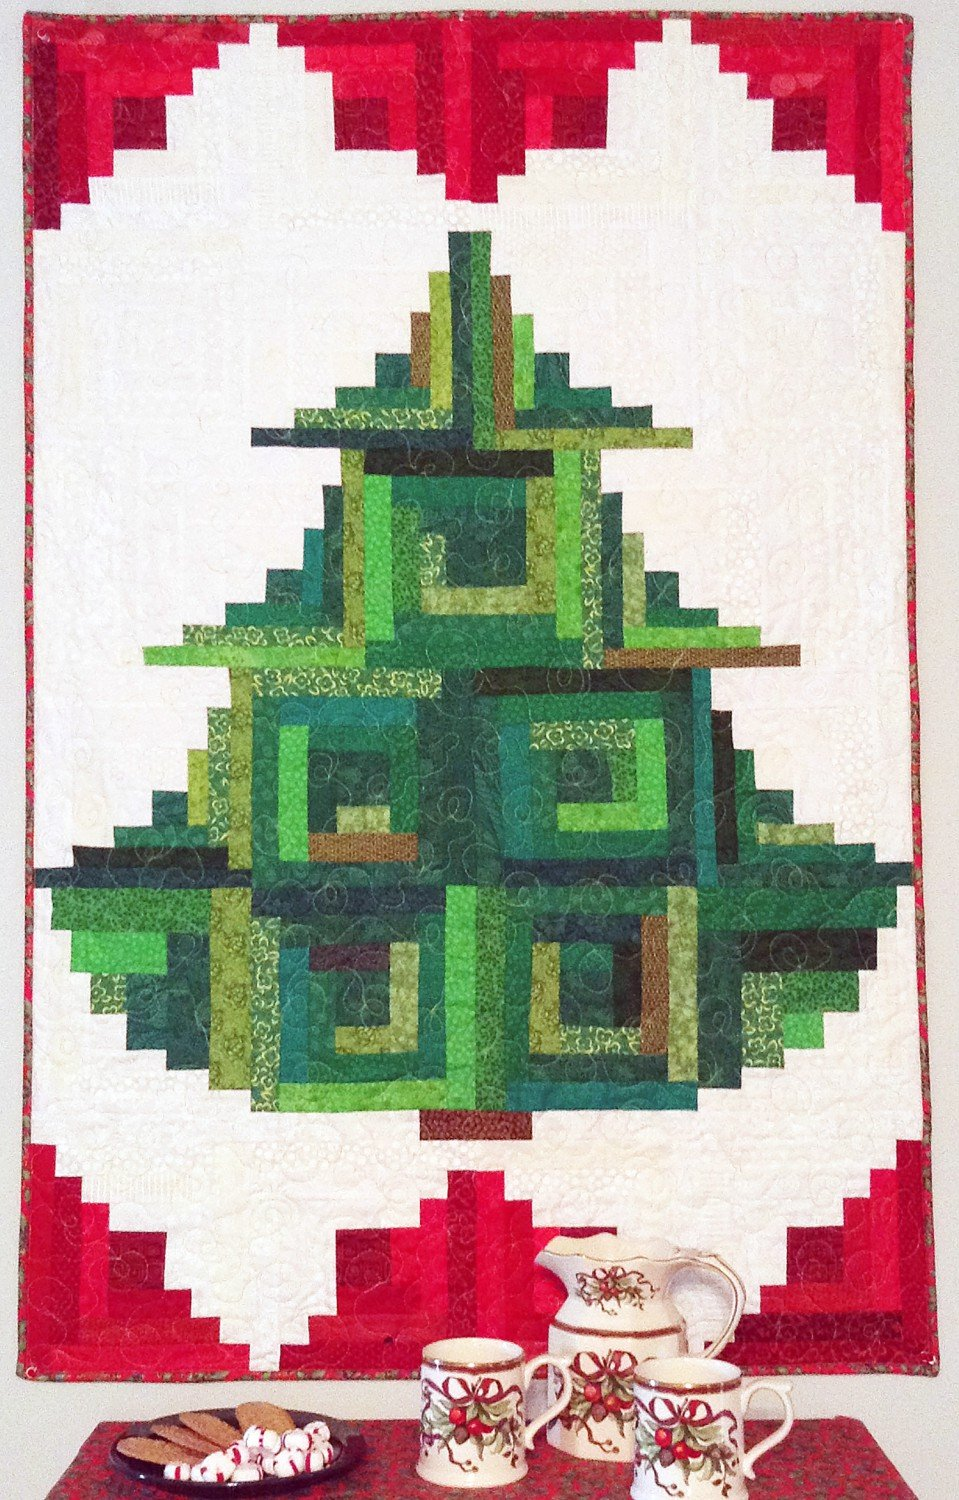 TRIM THE TREE KIT INCLUDED BINDING & PATTERN